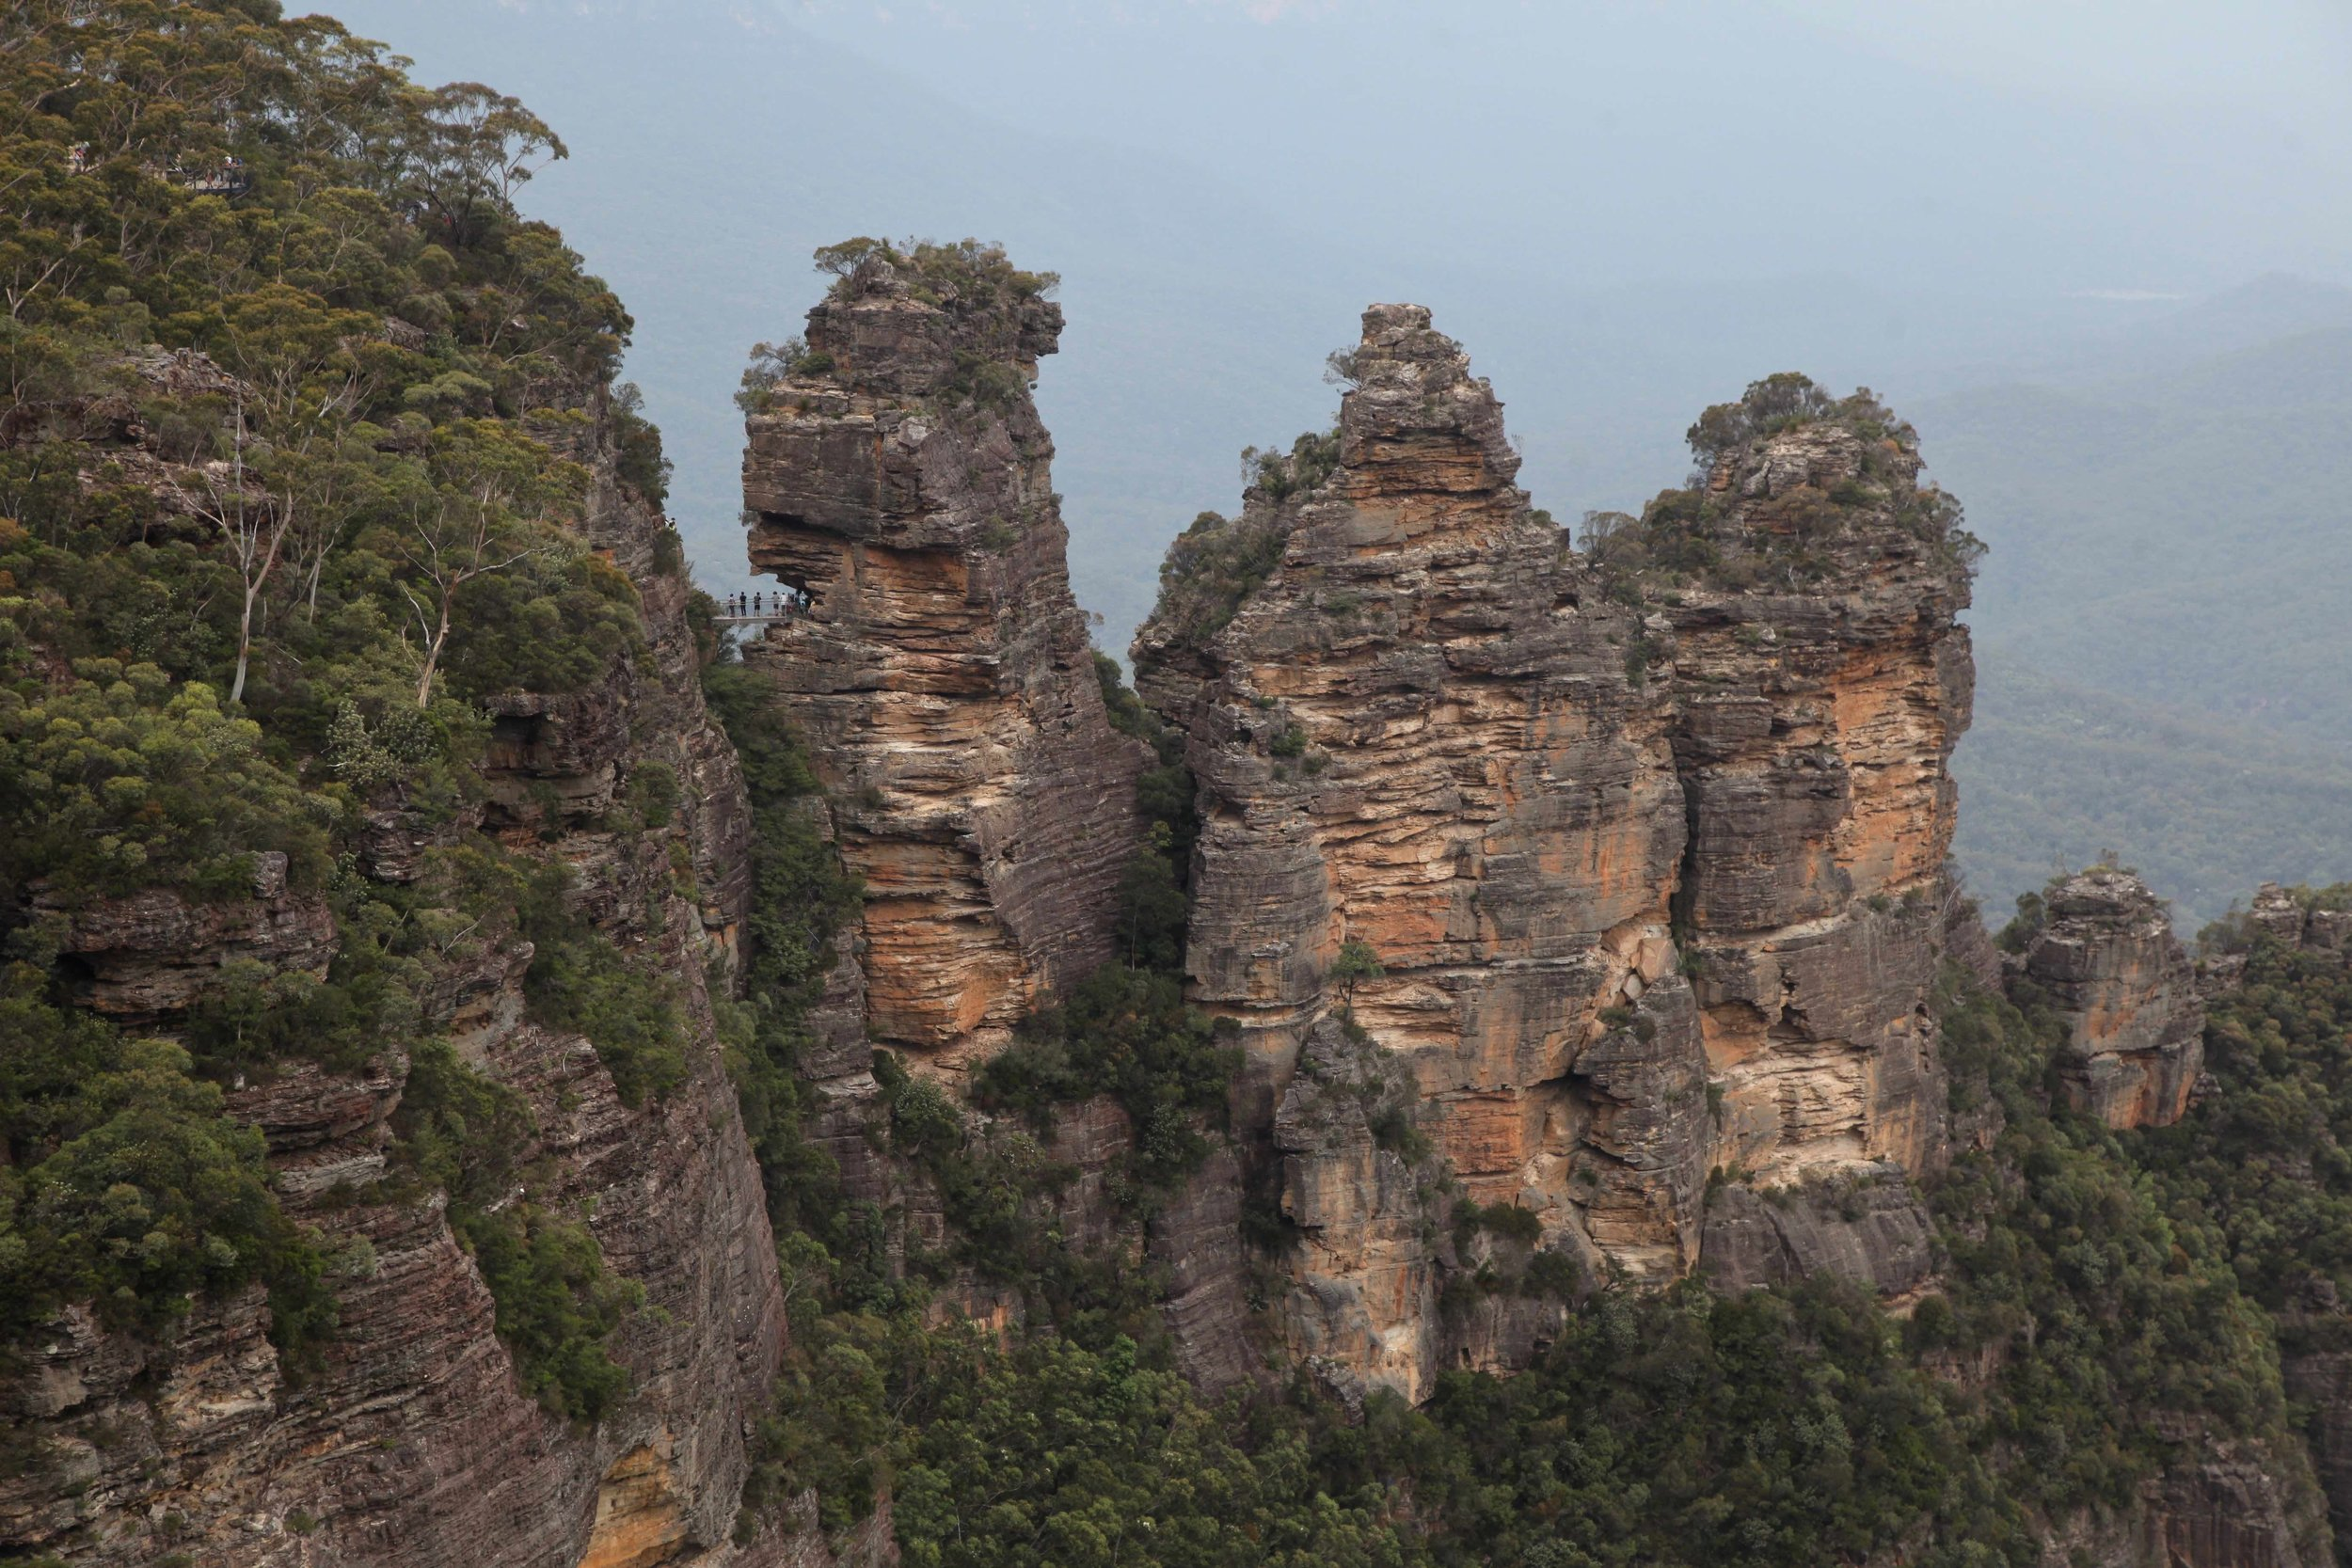 Blue Mountains icon: the Three Sisters viewed from the lookout at Echo Point in Katoomba.